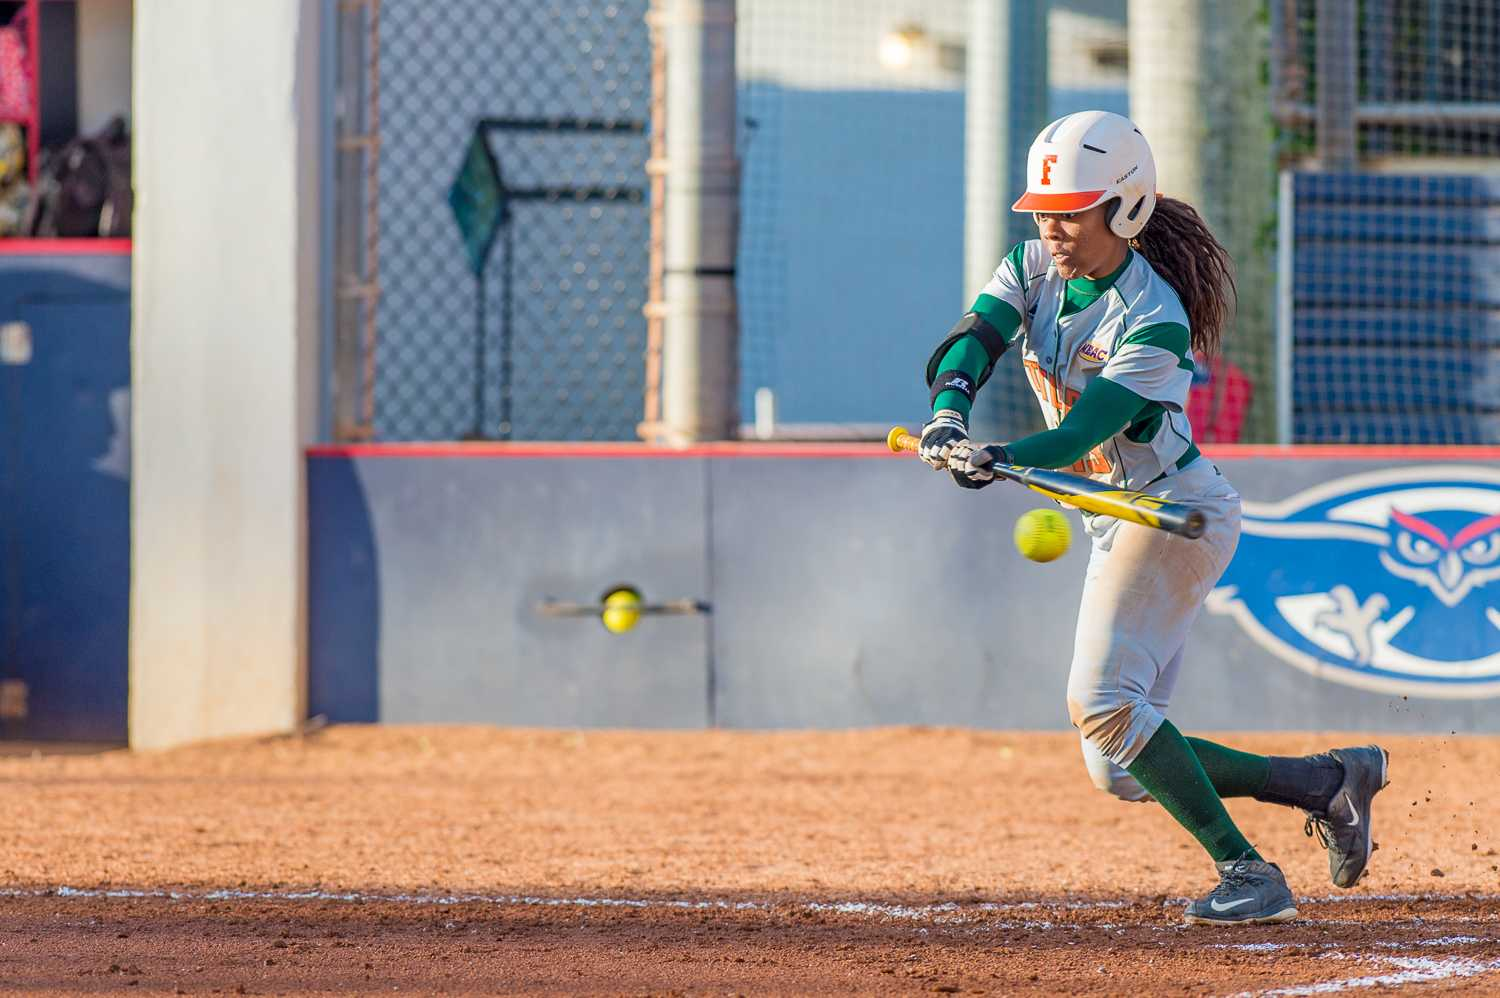 Center fielder Whitney Farris (13) runs into a bunt that resulted in an out in the bottom of the first.